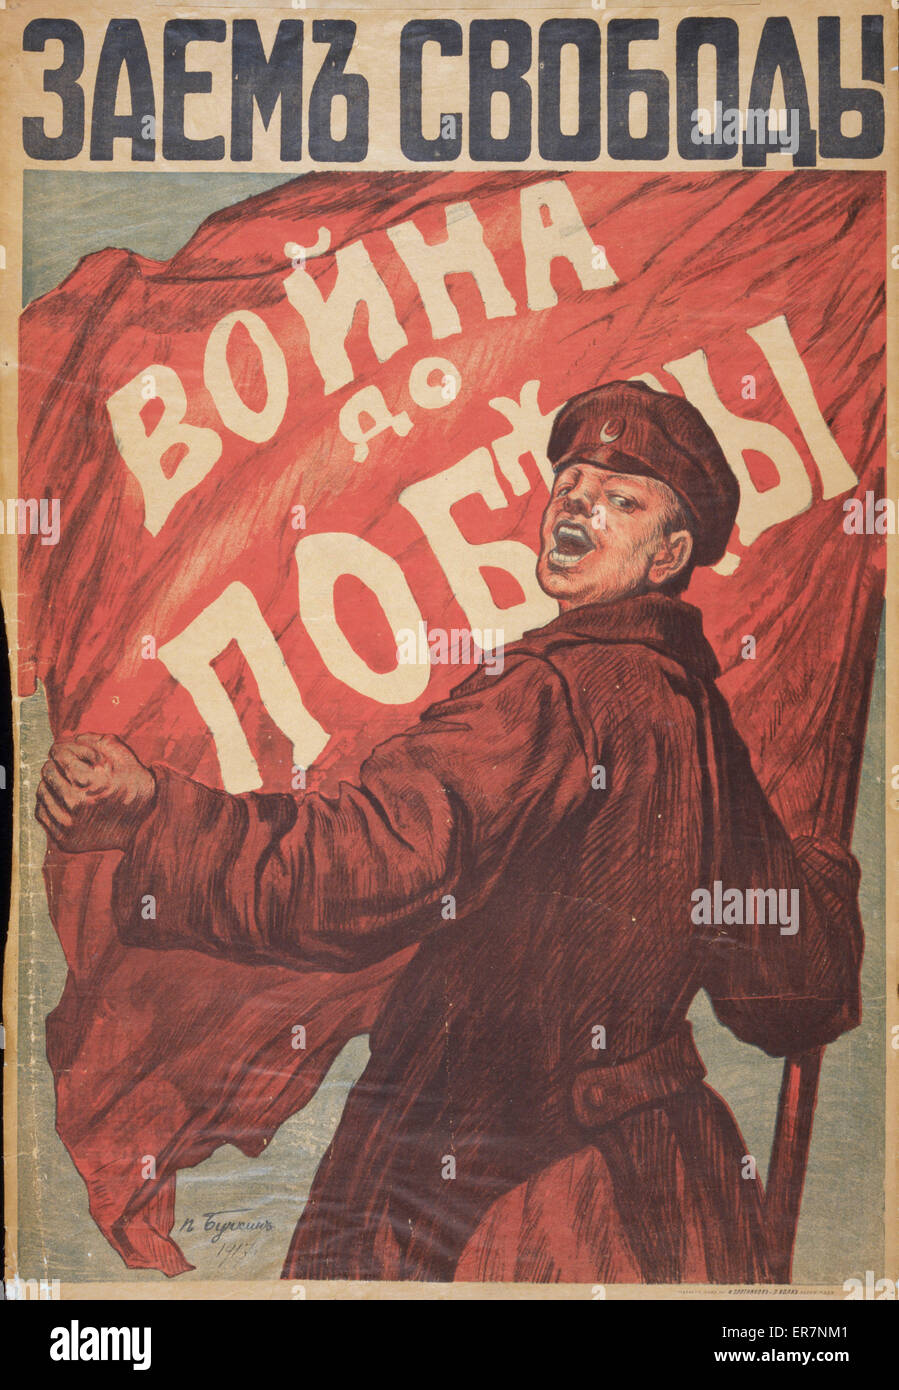 Loan for liberty. War until victory. Poster showing soldier unfurling red War until victory banner. Date 1917. Loan - Stock Image